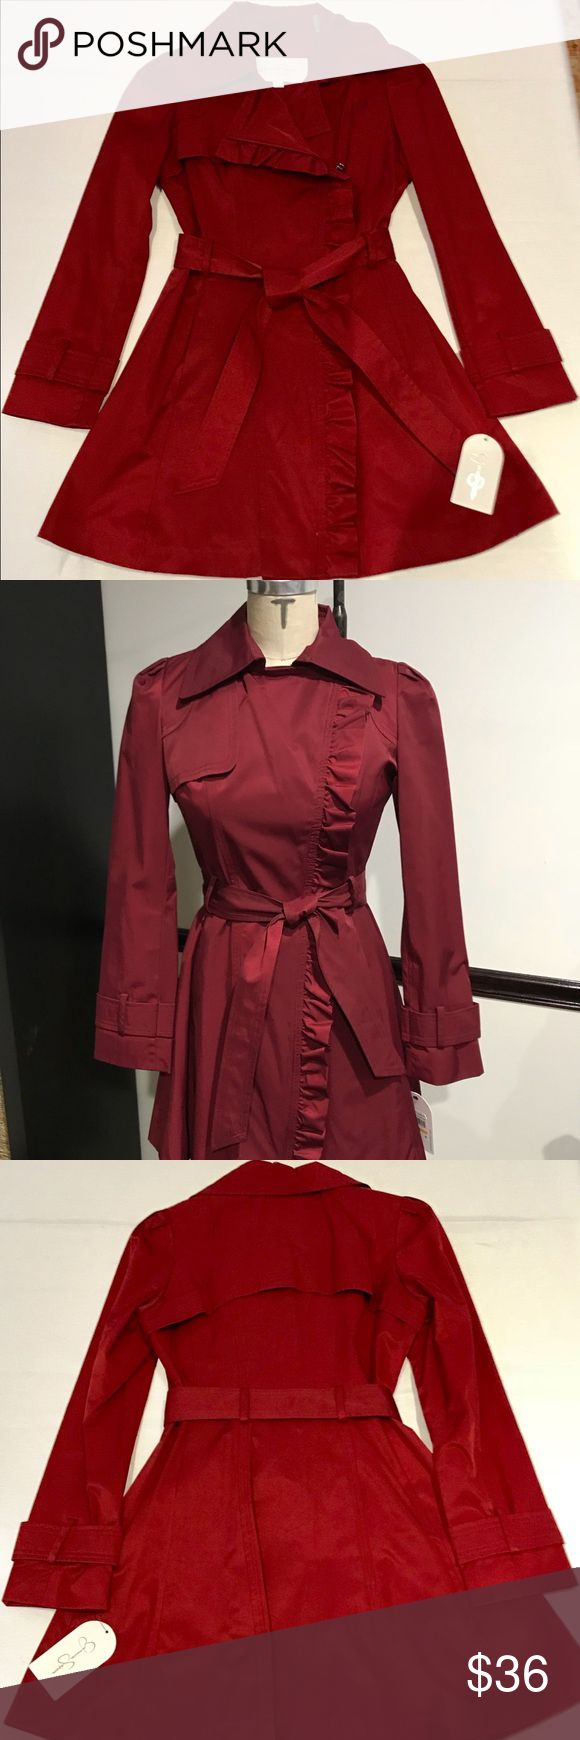 Jessica Simpson Belted Ruffle Trench Coat Jessica Simpson puff sleeve, belted, ruffle trimmed, 3/4 length, double breasted, zip trench coat. Cotton polyester blend shell with poly lining. Dry clean only. New with tags. Jessica Simpson Jackets & Coats Trench Coats